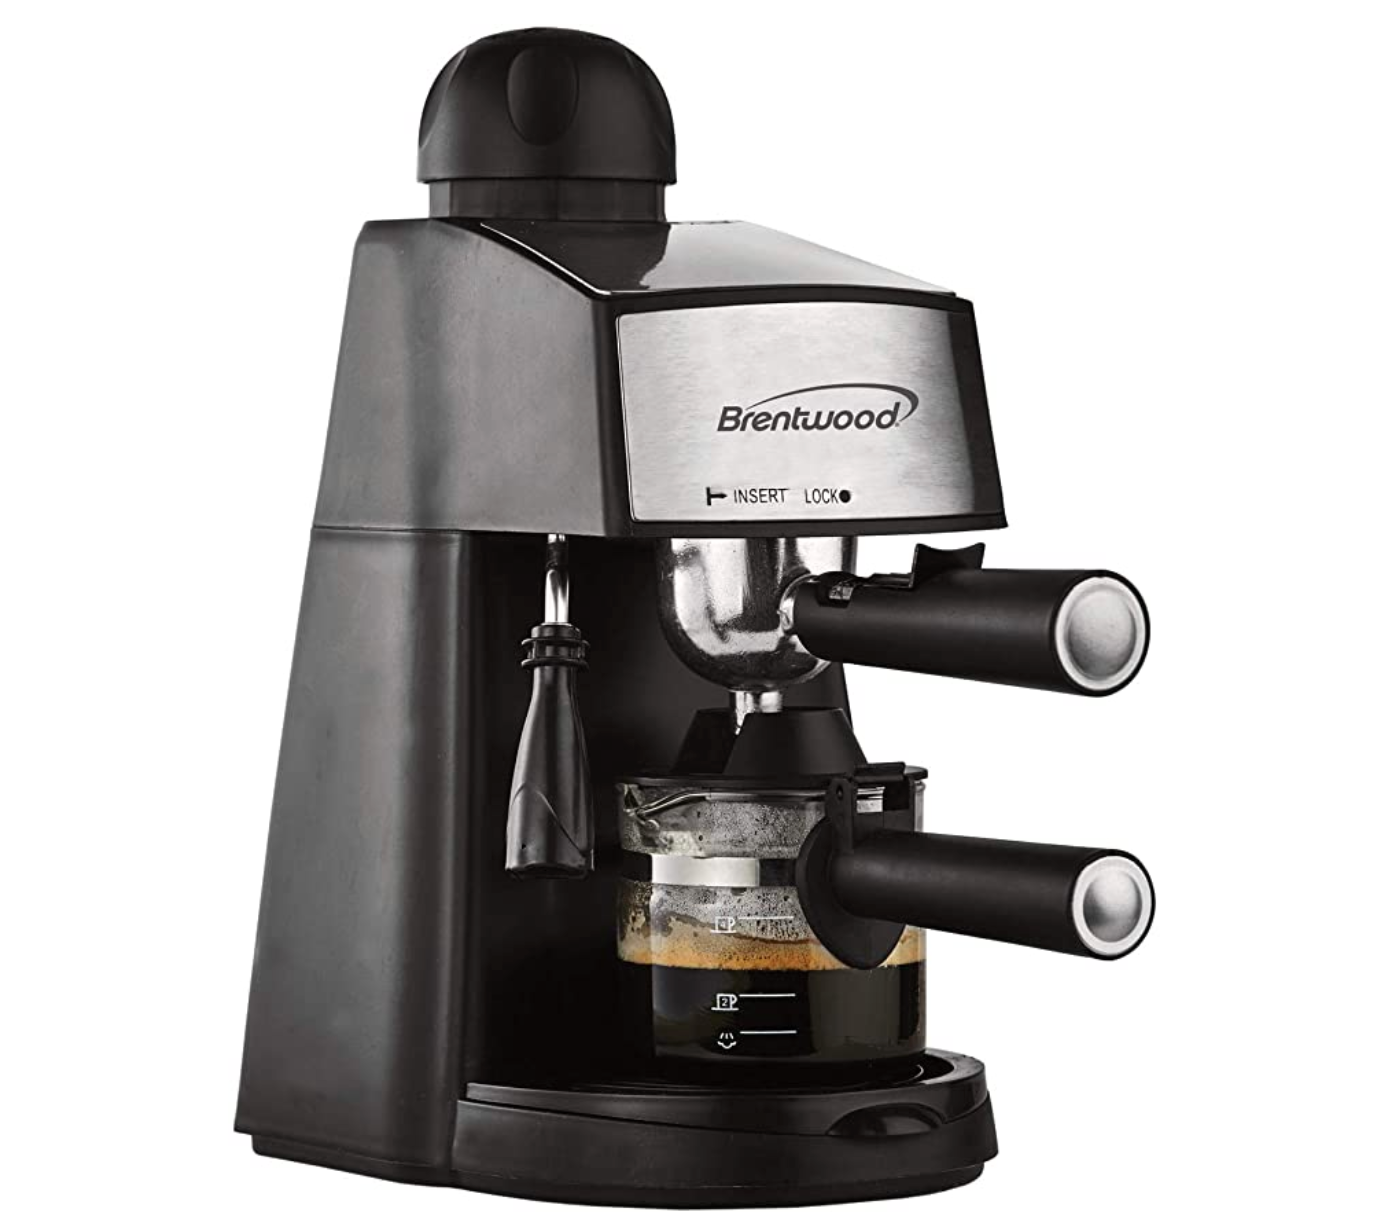 Brentwood™ Espresso and Cappuccino Machine Coffee Maker with Foamer Steamer